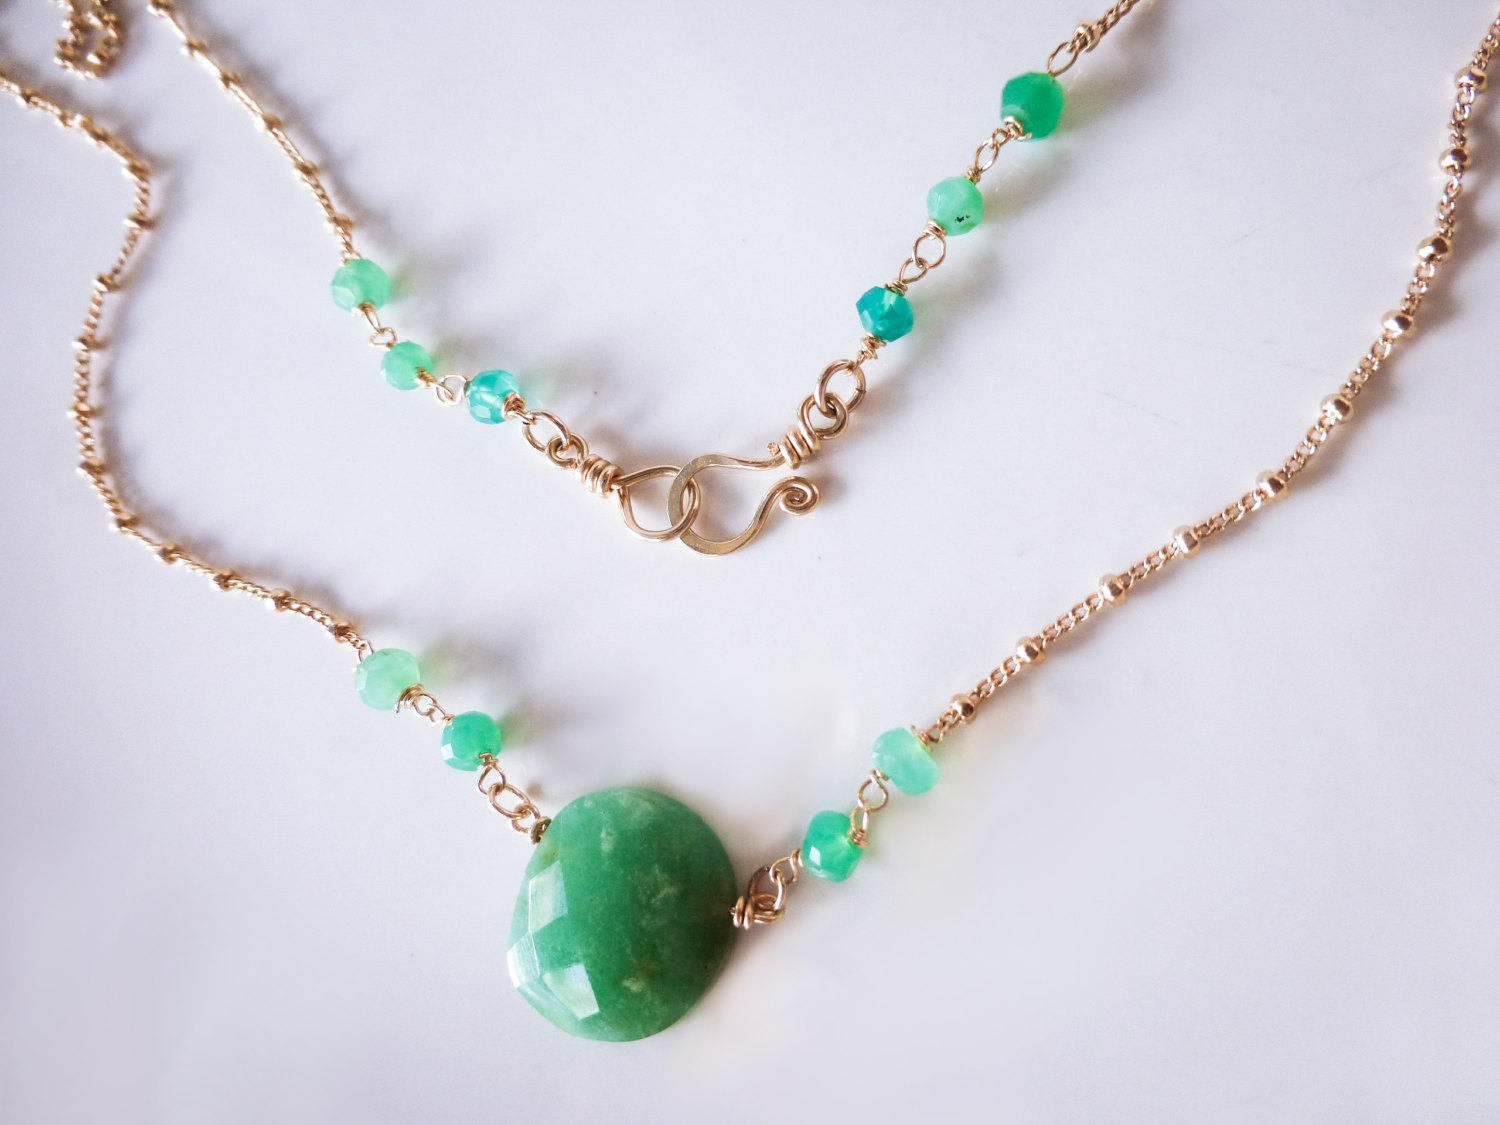 semi necklace teardrop rsp john precious pdp stone gold main online chrysoprase buyjohn at pendant johnlewis lewis